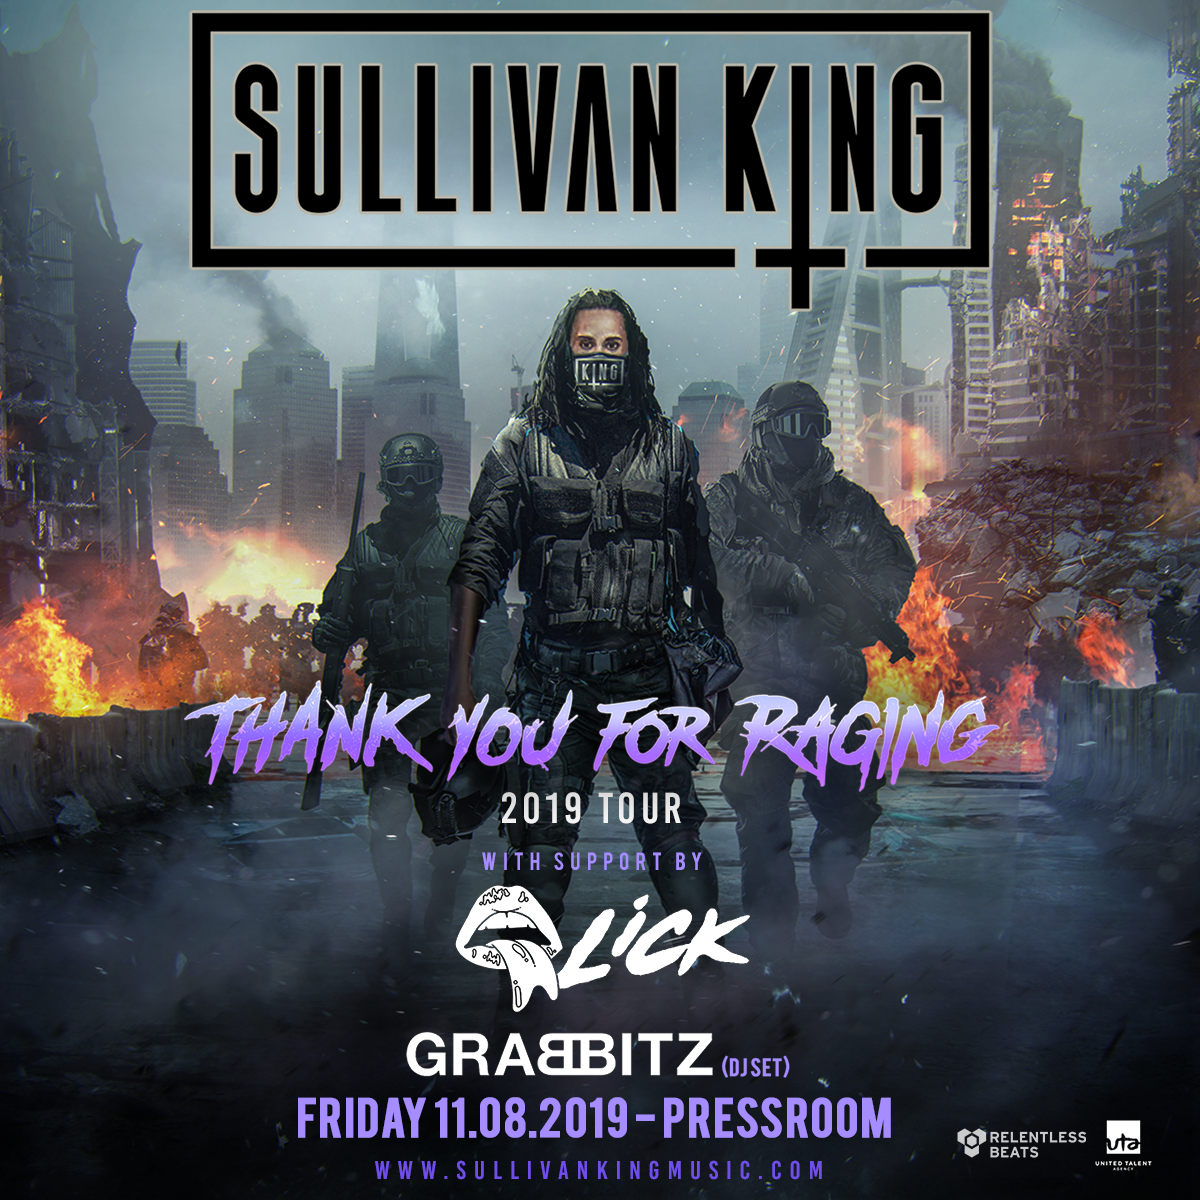 Flyer for Sullivan King